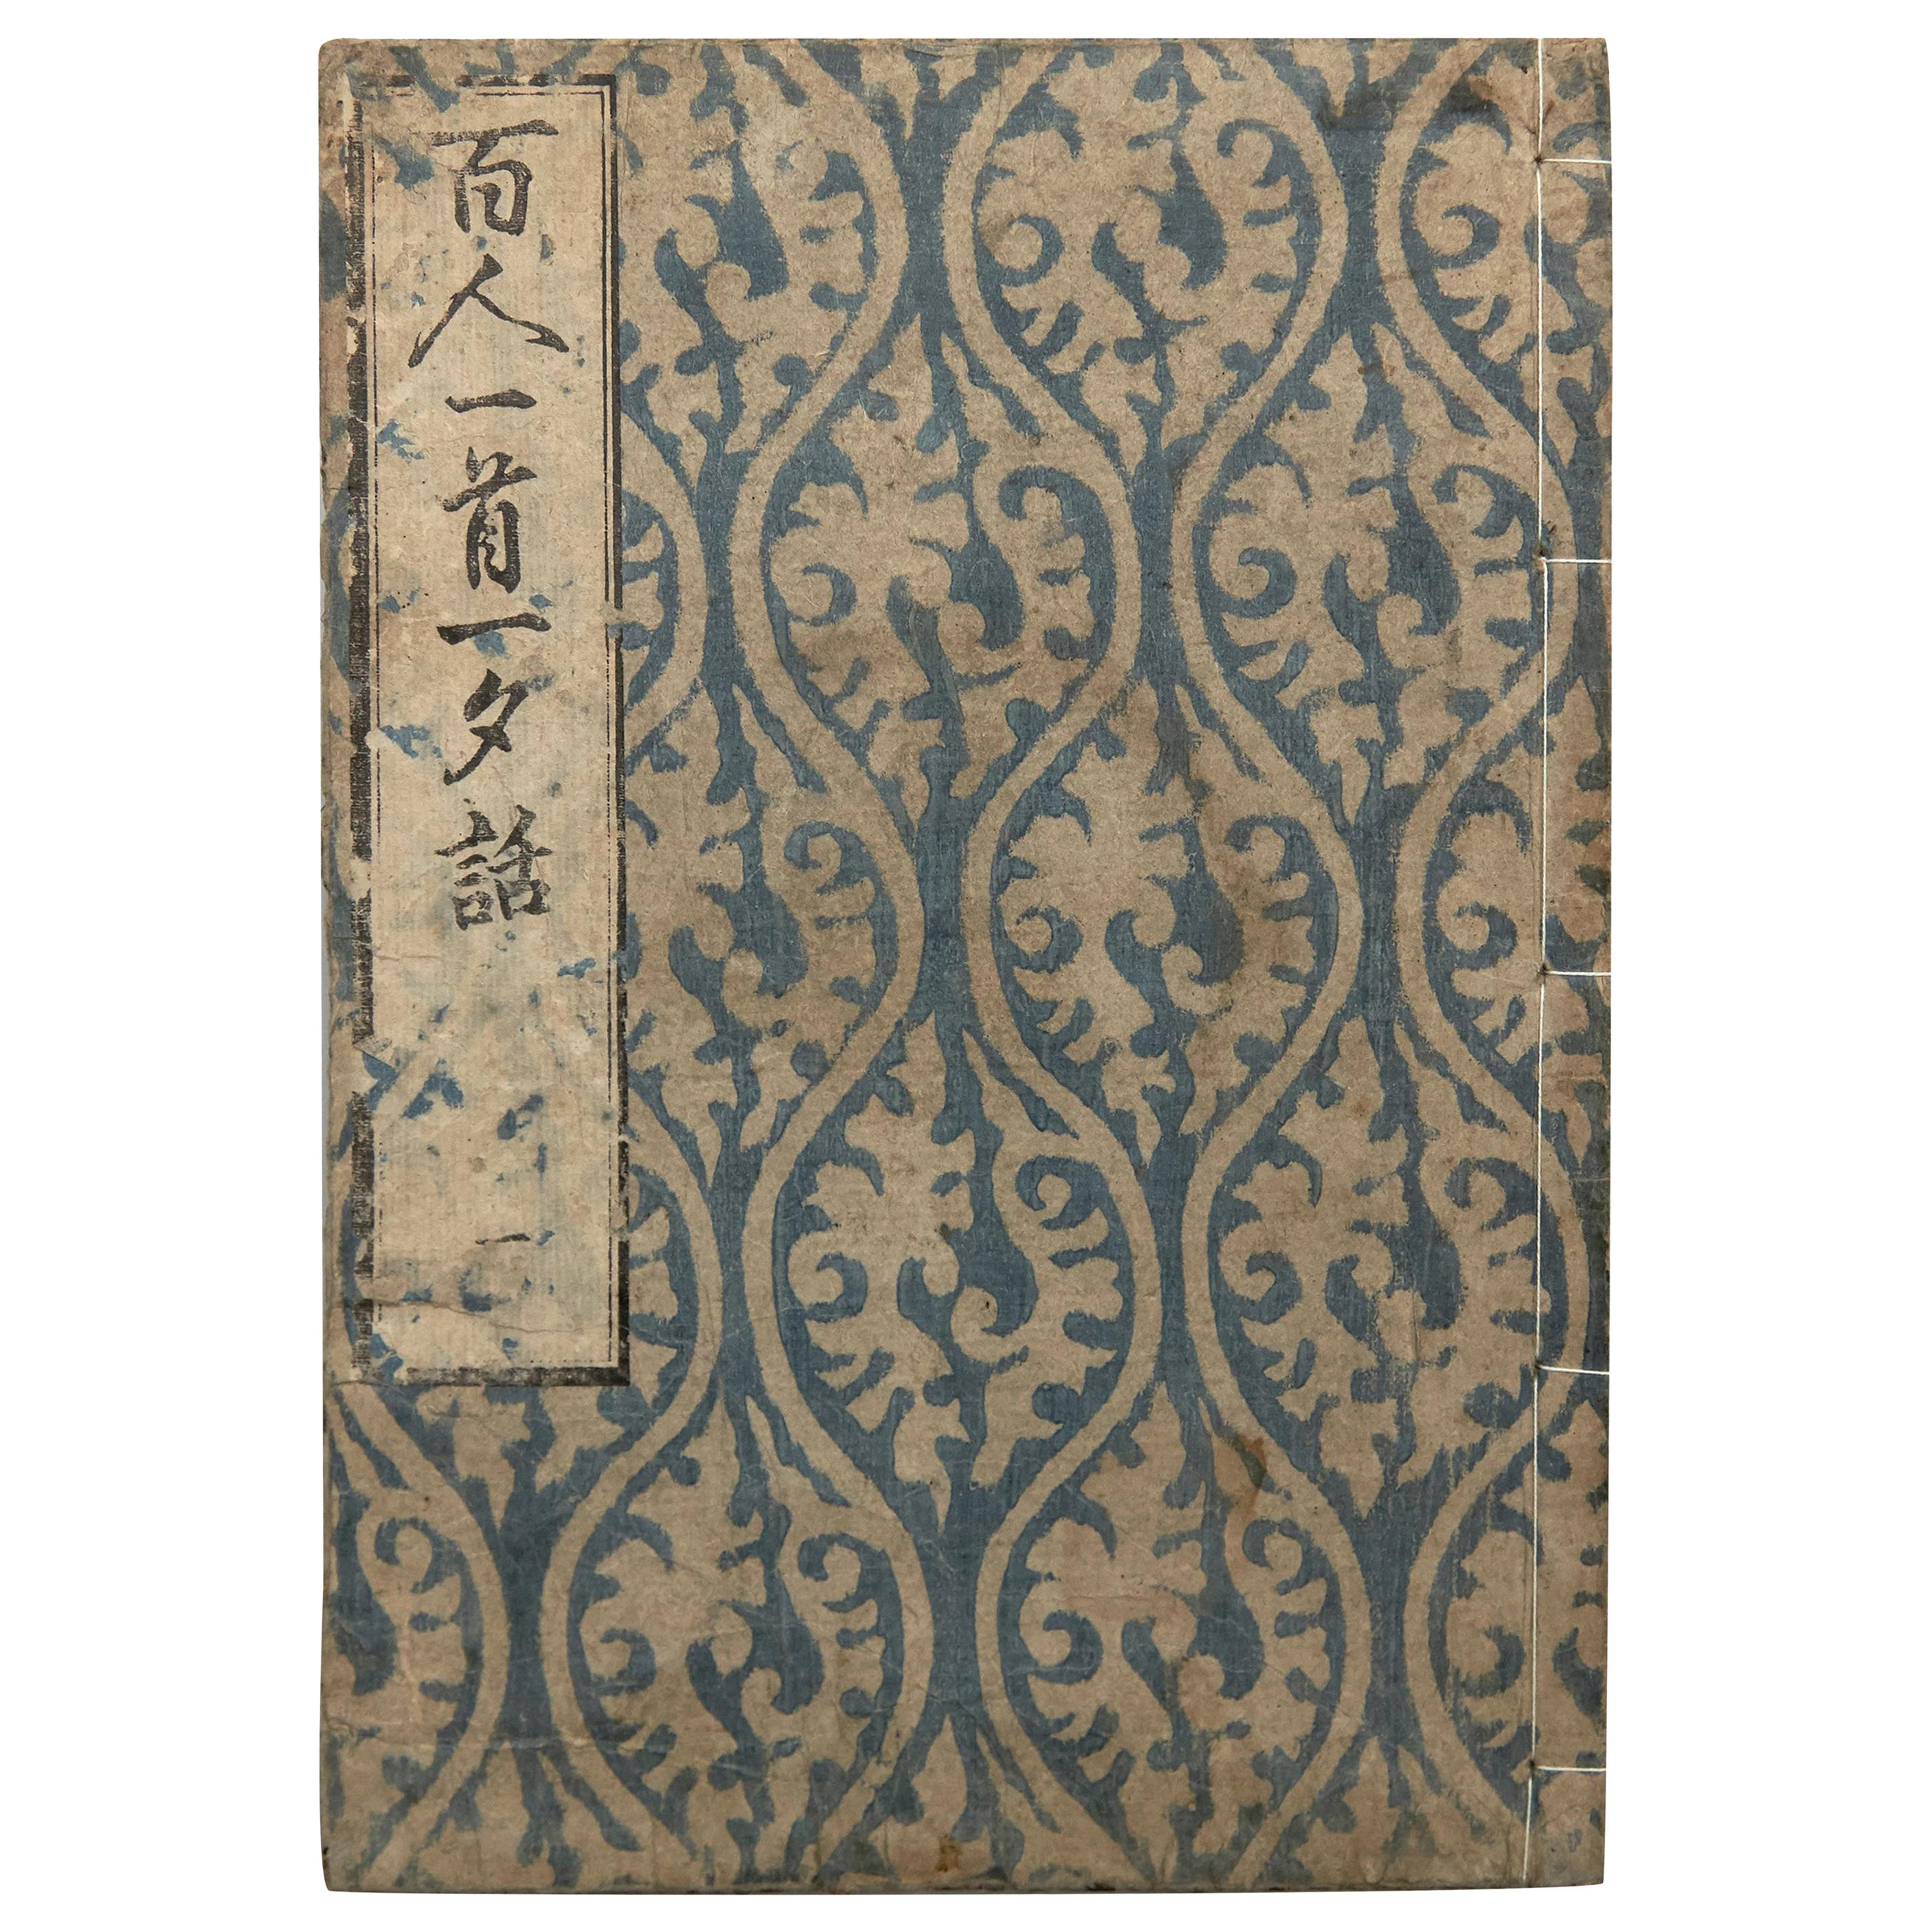 Antique Japanese Woodblock Print Book Edo Period, circa 1833